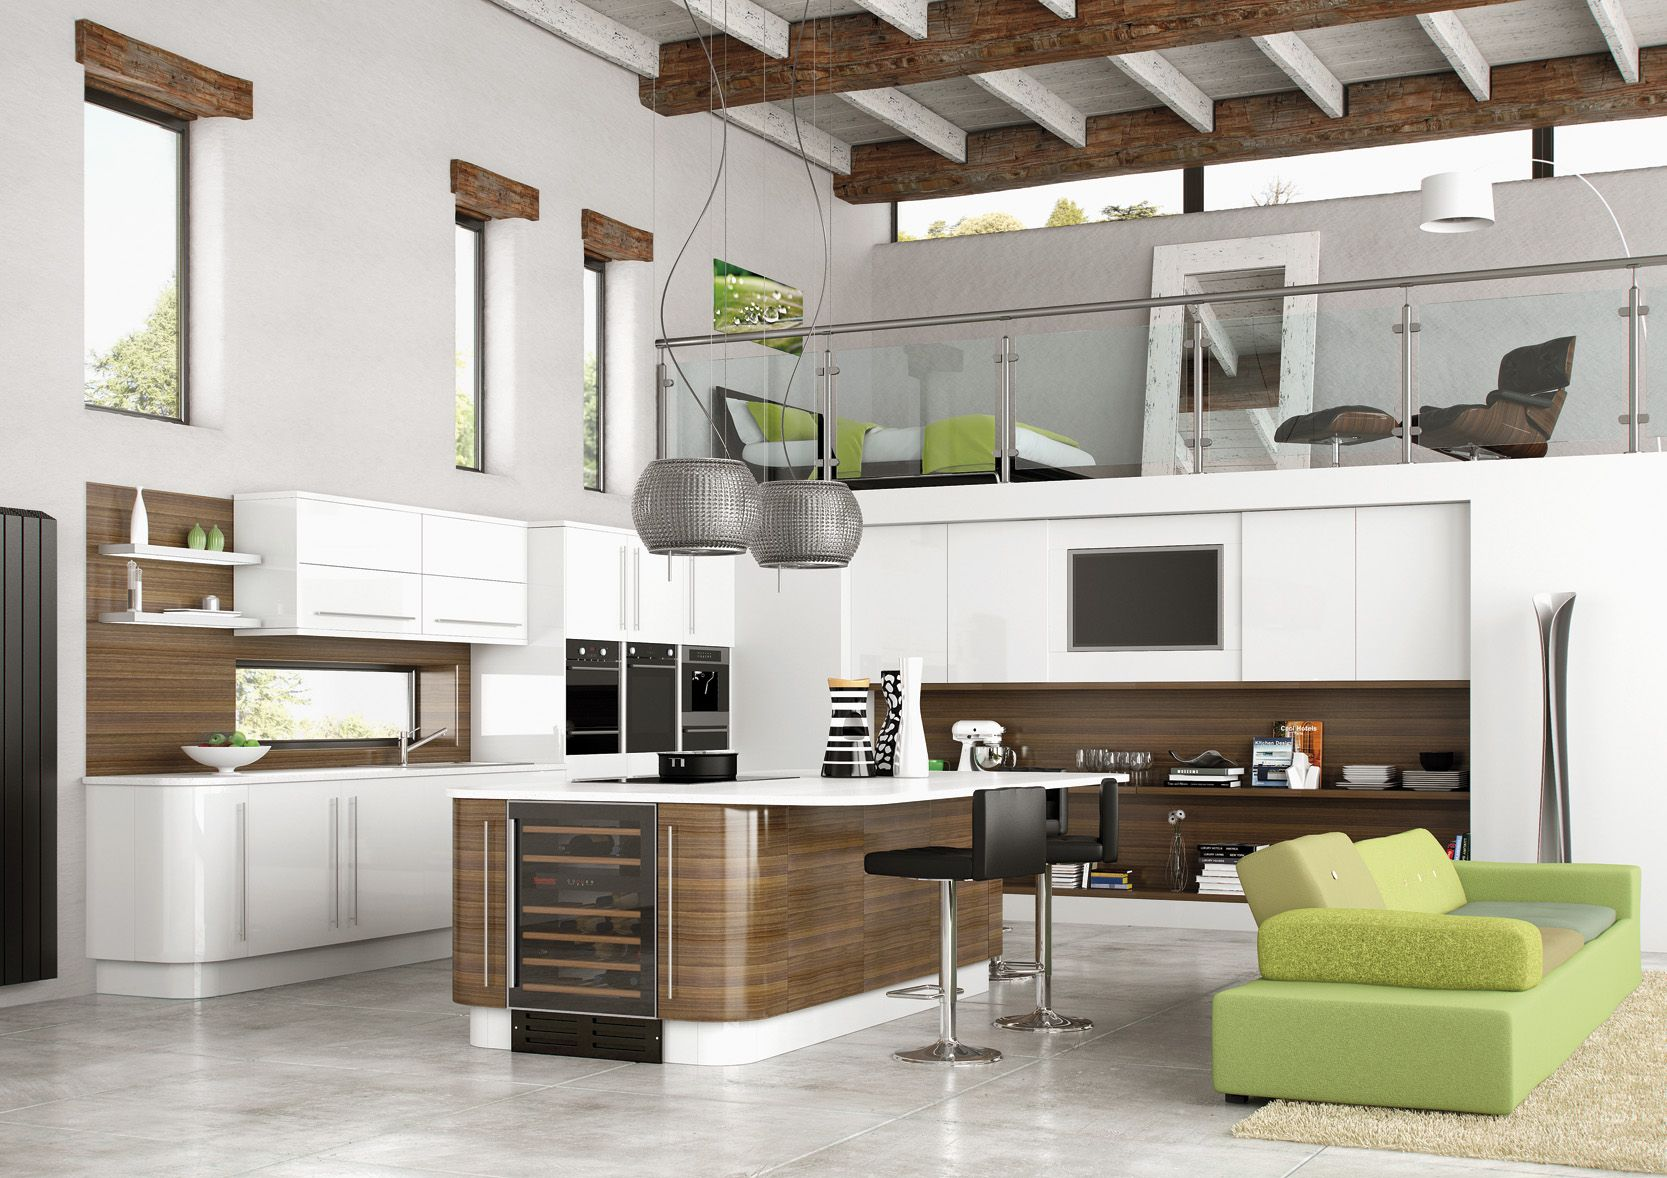 Kitchenawesome Modern Open Kitchen Design And Modern Kitchen Classy What Is New In Kitchen Design Design Inspiration